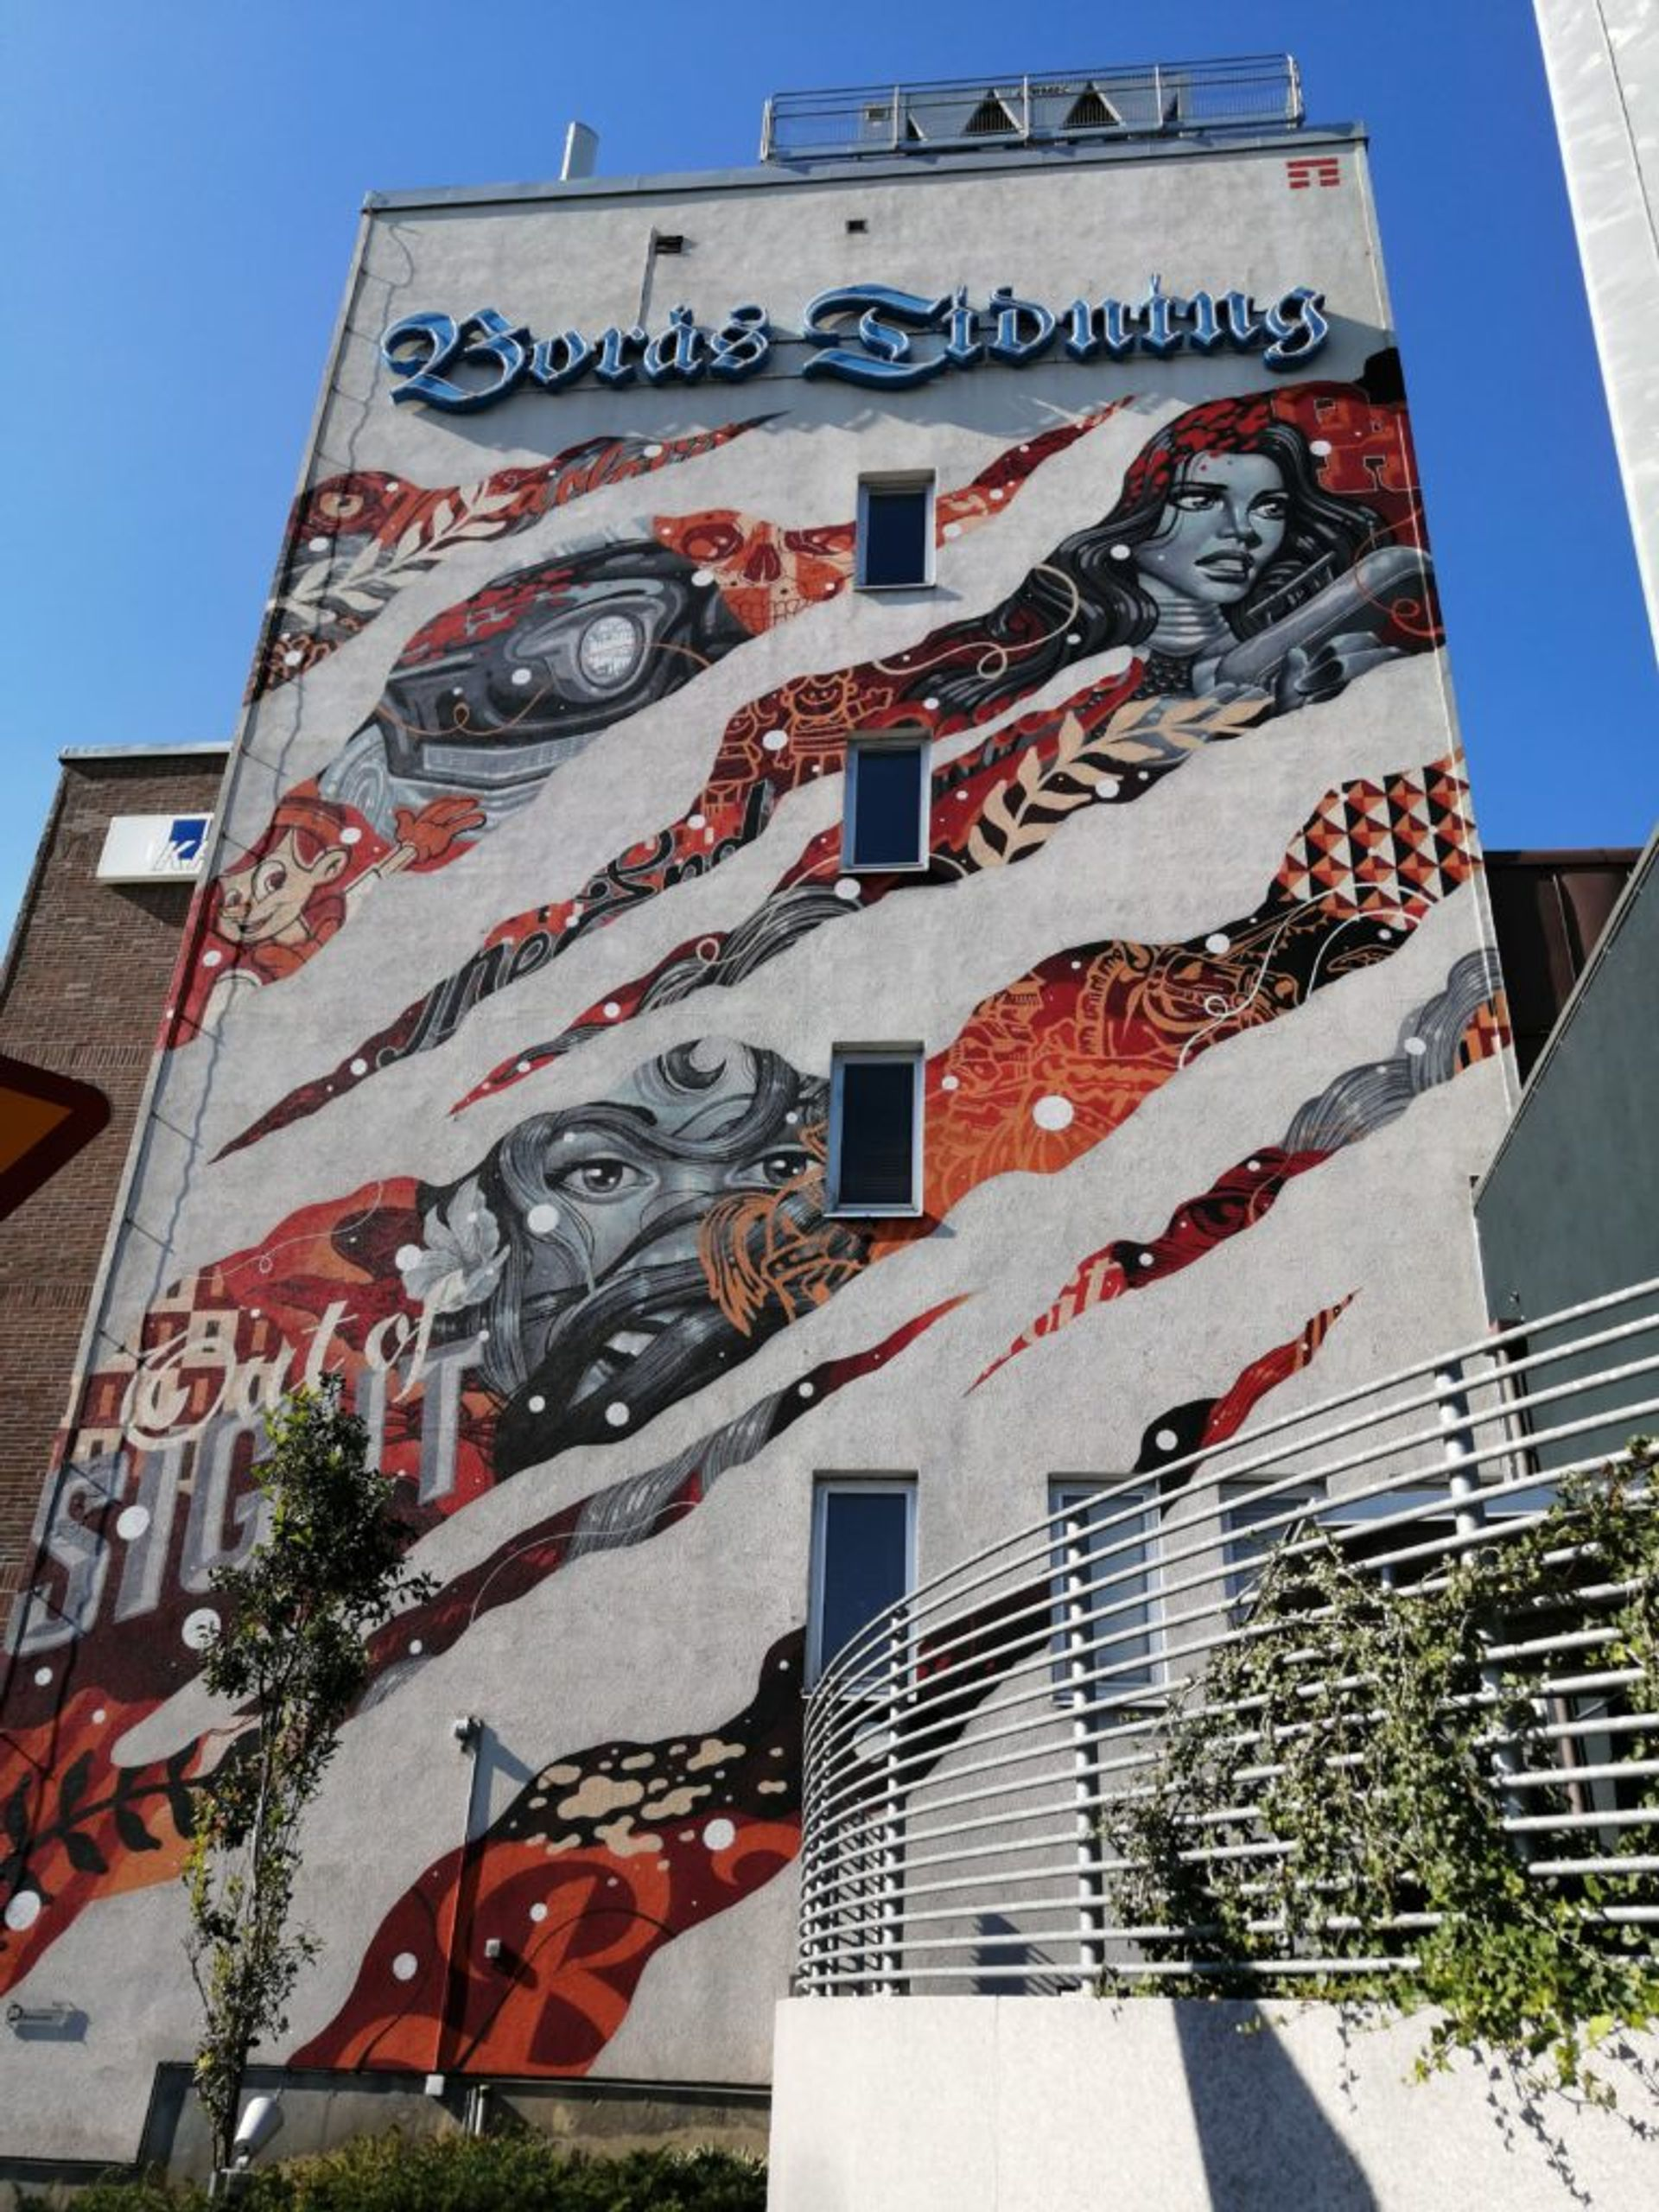 Graphic comic book inspired mural on the side of the Borås newspaper office building.